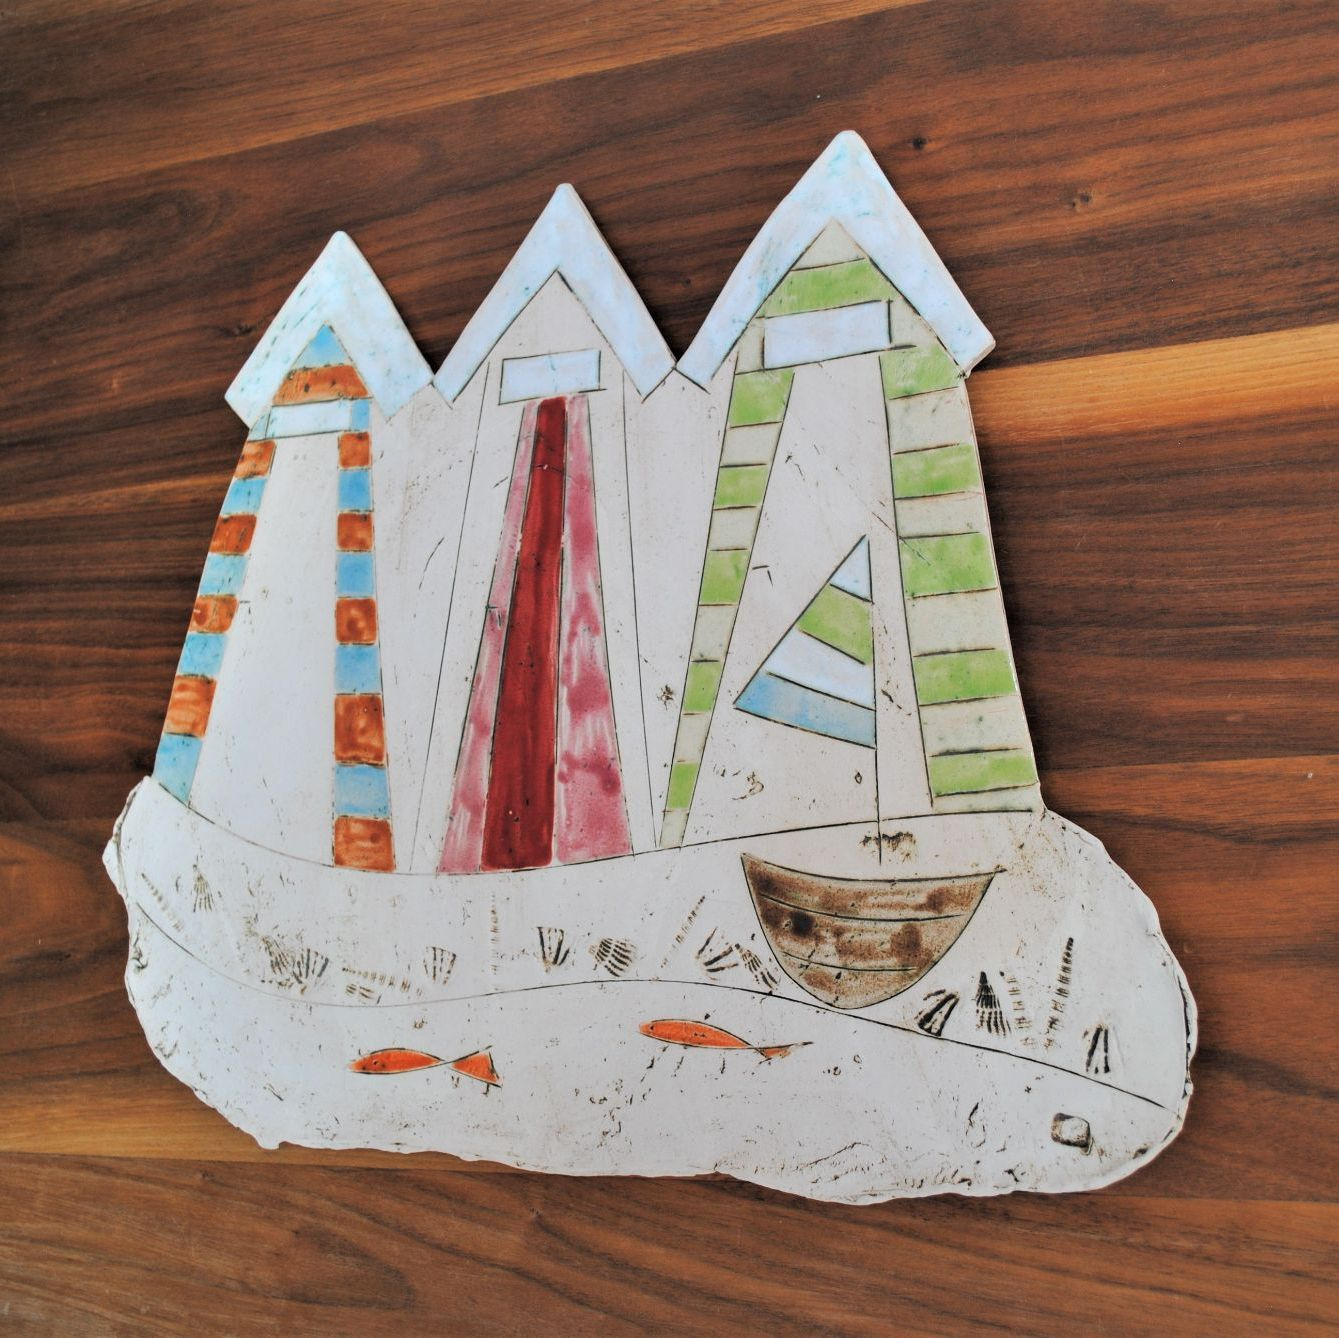 Wall art, ceramic hanging picture with beach houses, boat and fish.